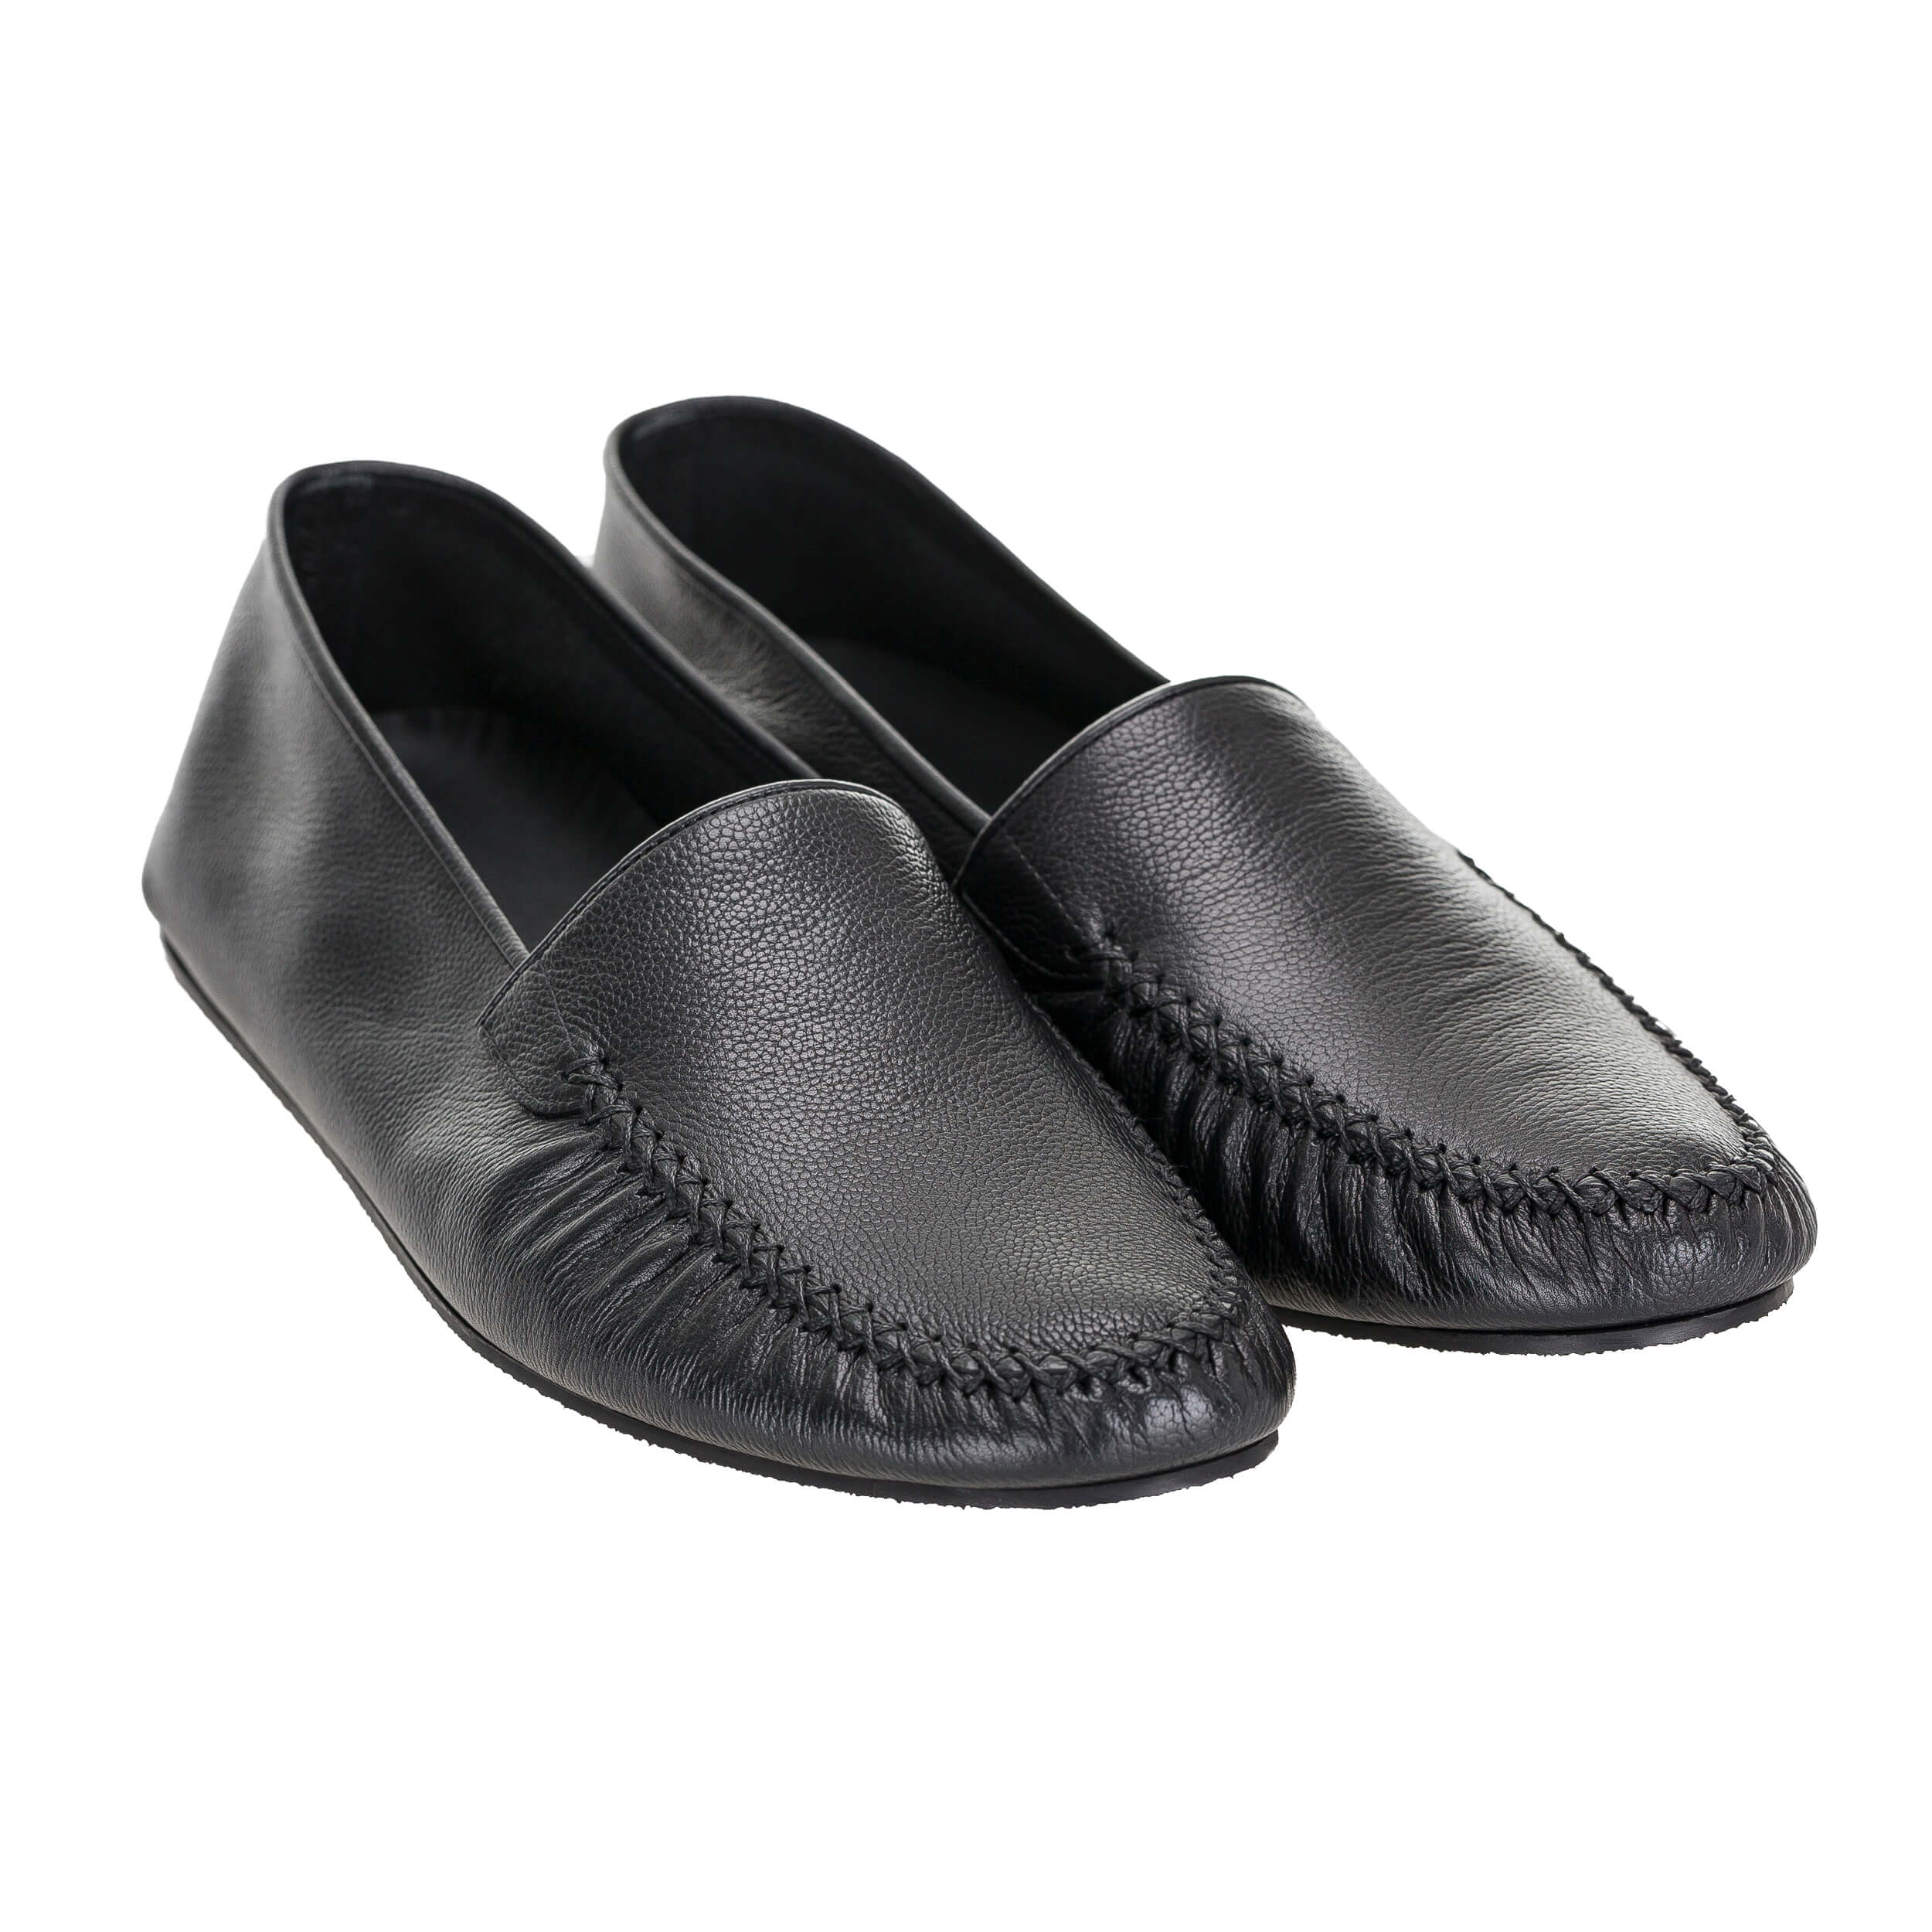 Barton Classic Leather Loafer Shoes